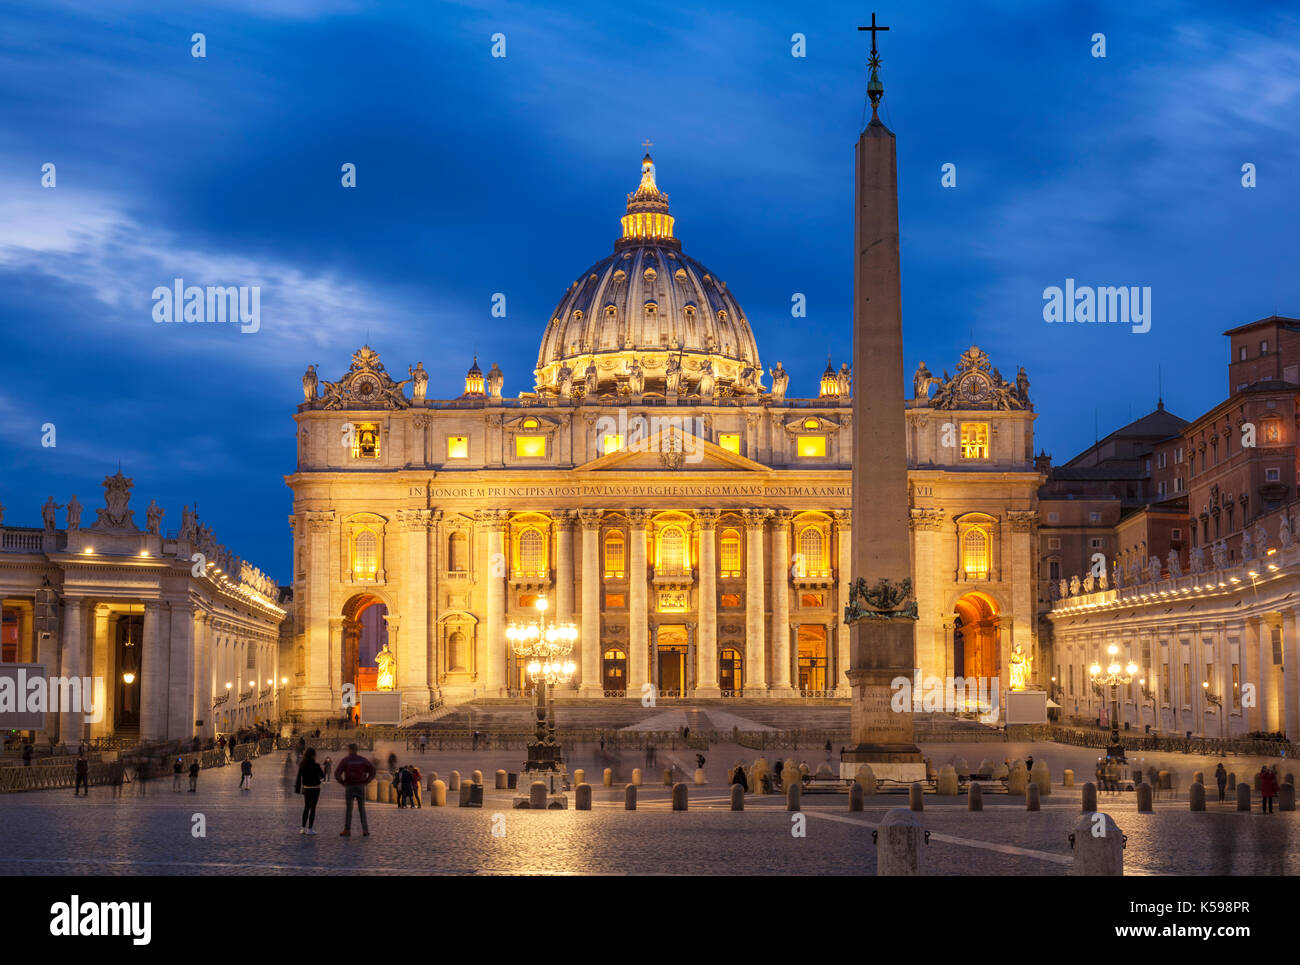 ITALY ROME THE VATICAN CITY St Peters Square and St Peters Basilica Vatican City ay night Roma Rome Lazio Italy EU Europe - Stock Image